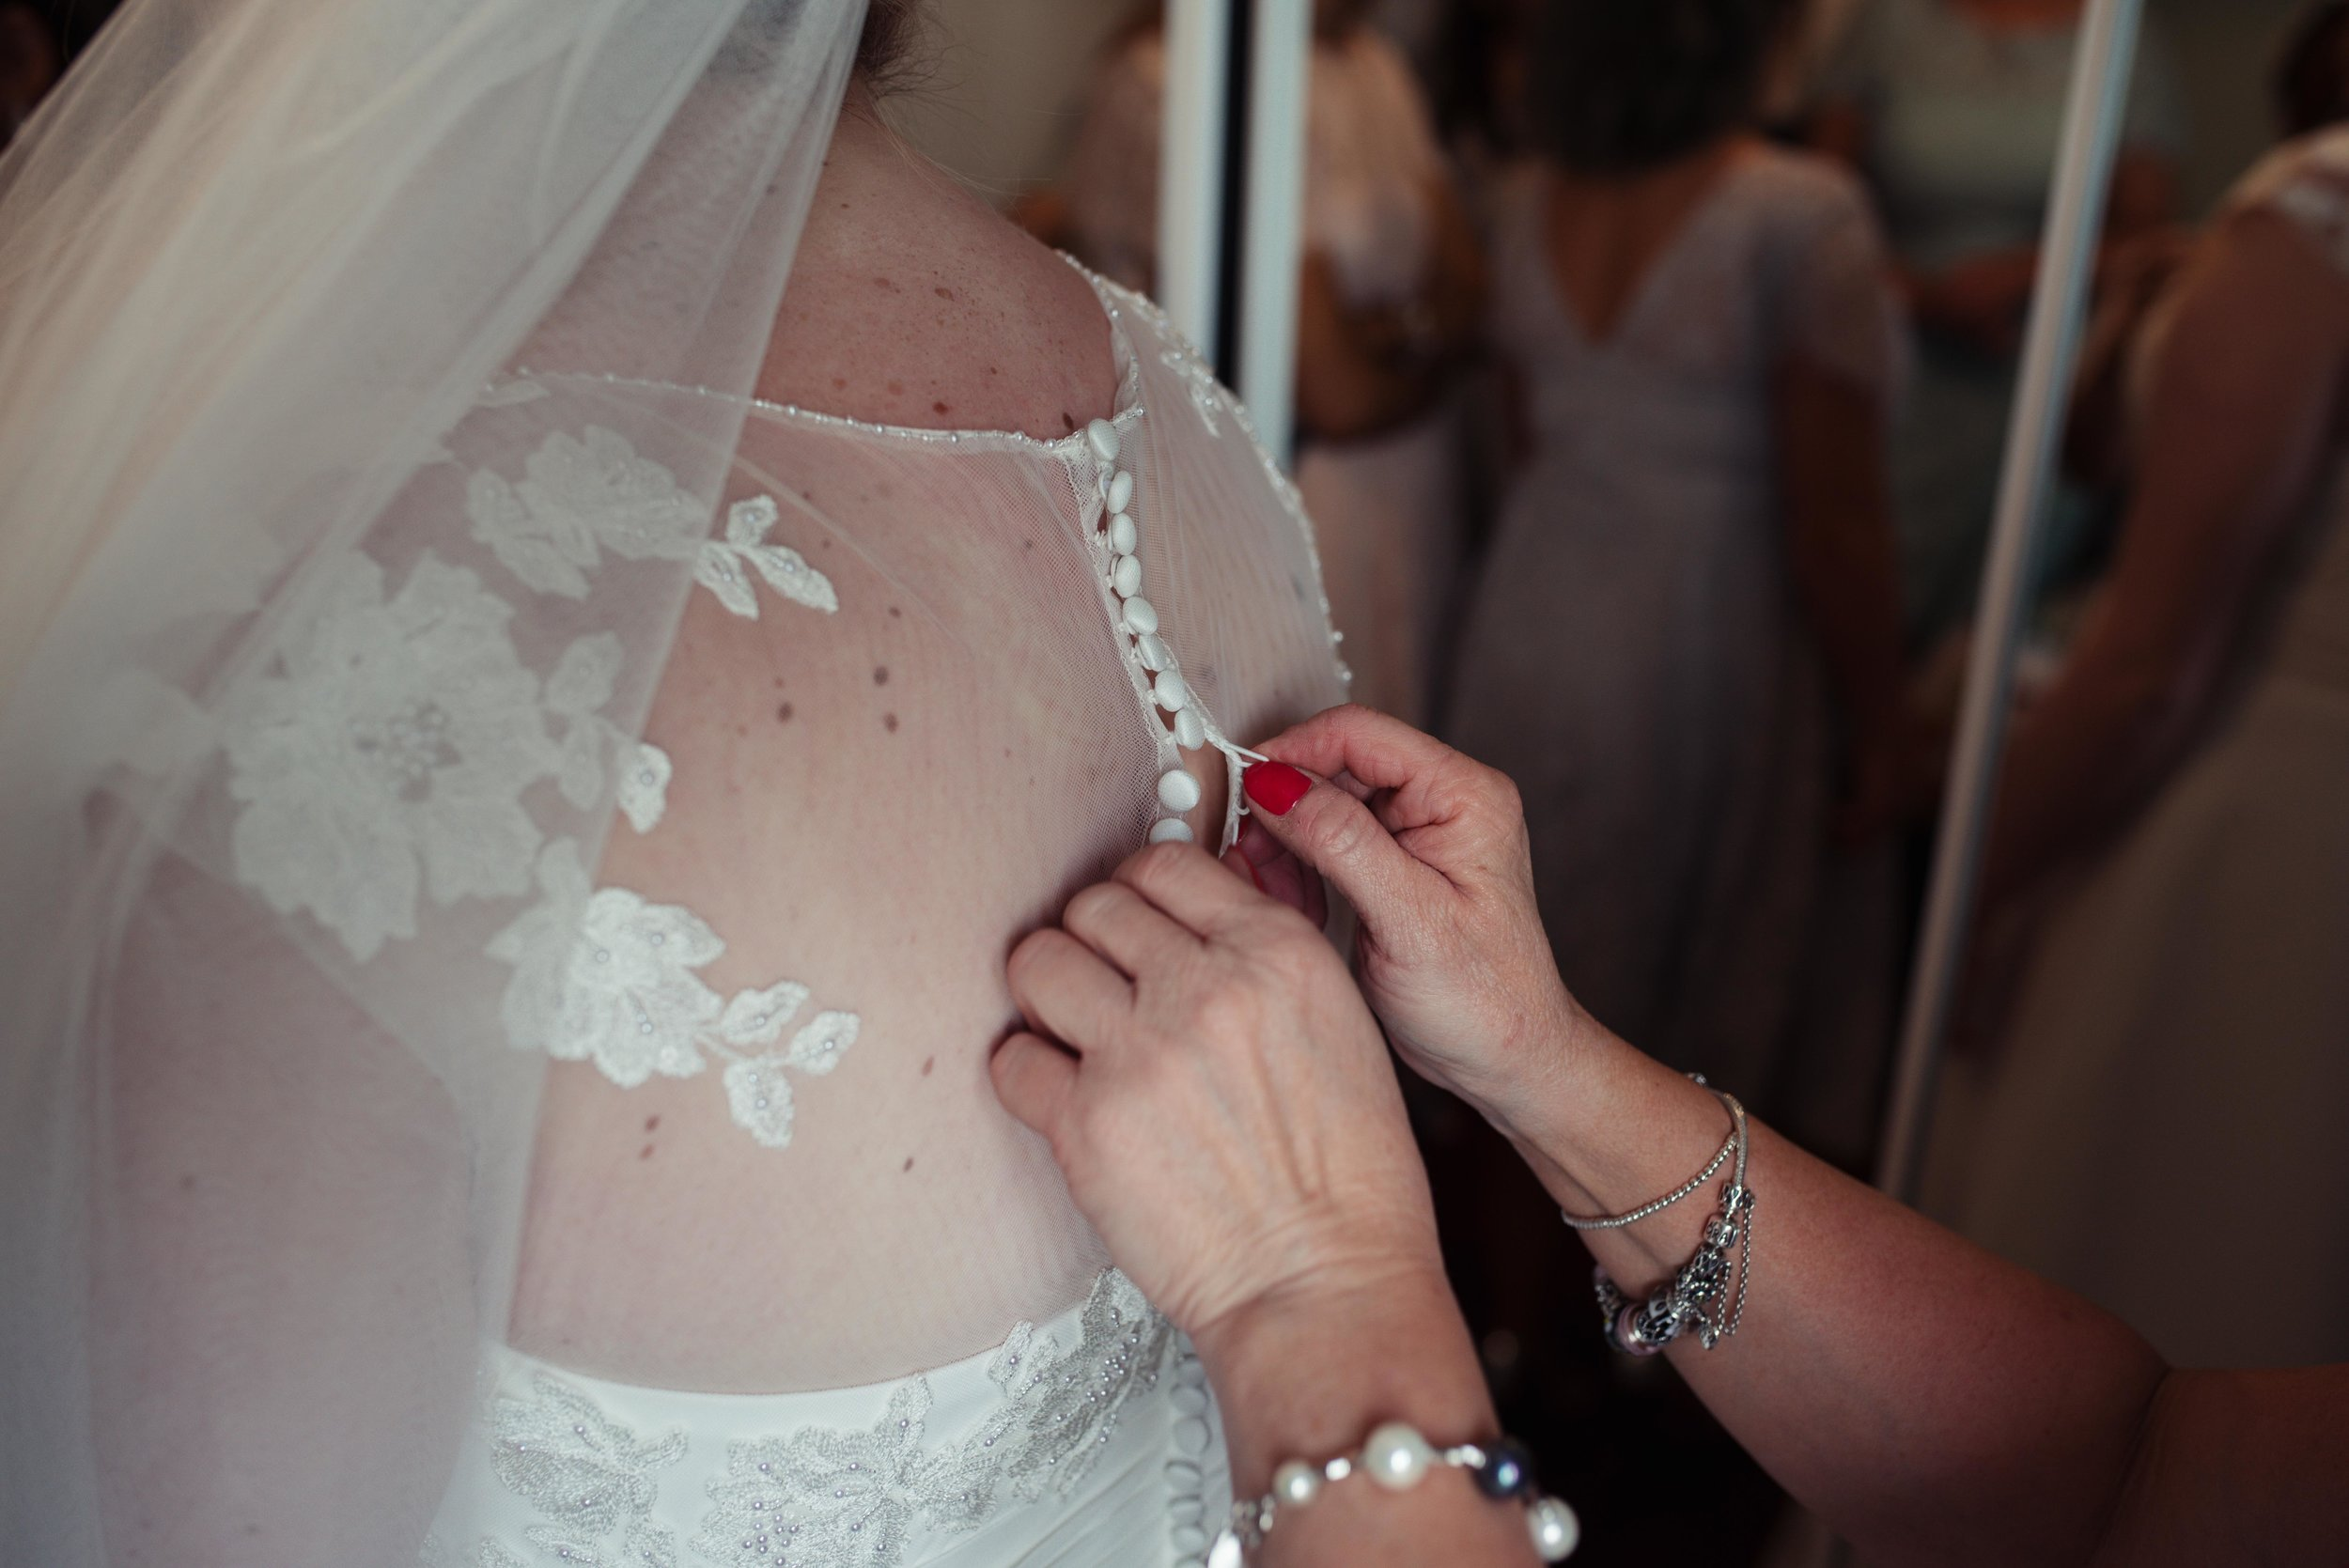 The bride is getting her dress buttoned up by her mother